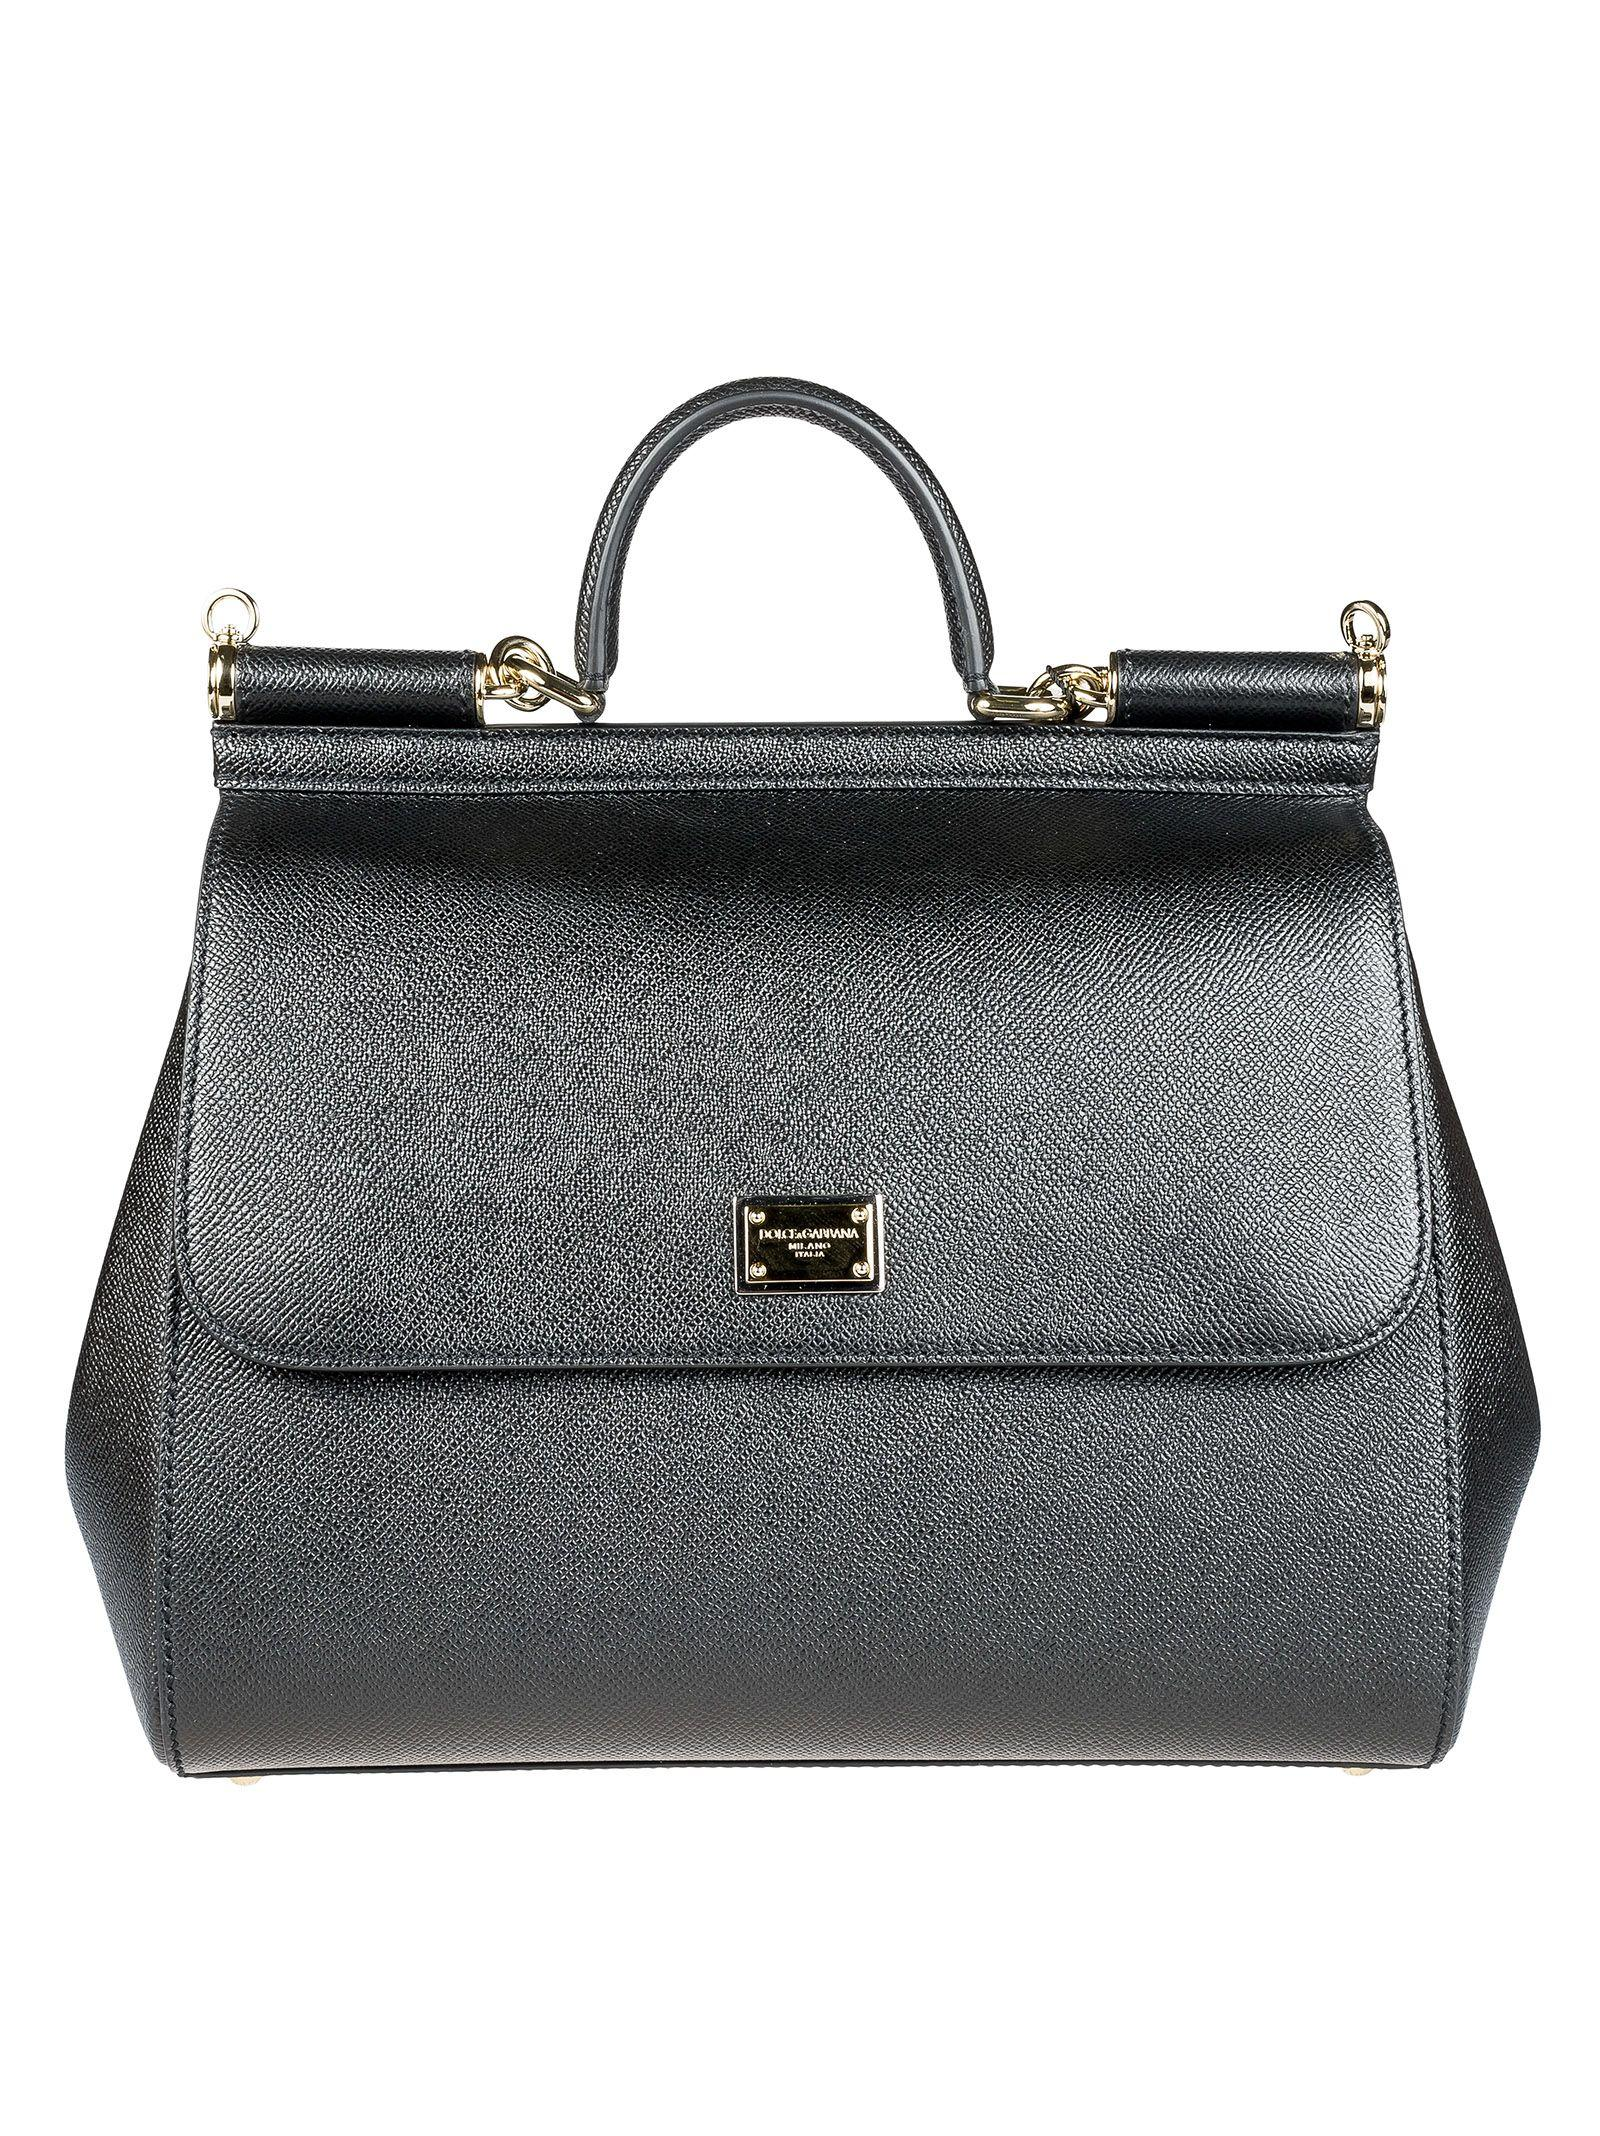 Dolce & Gabbana Miss Sicily Dauphine Leather Bag In Black